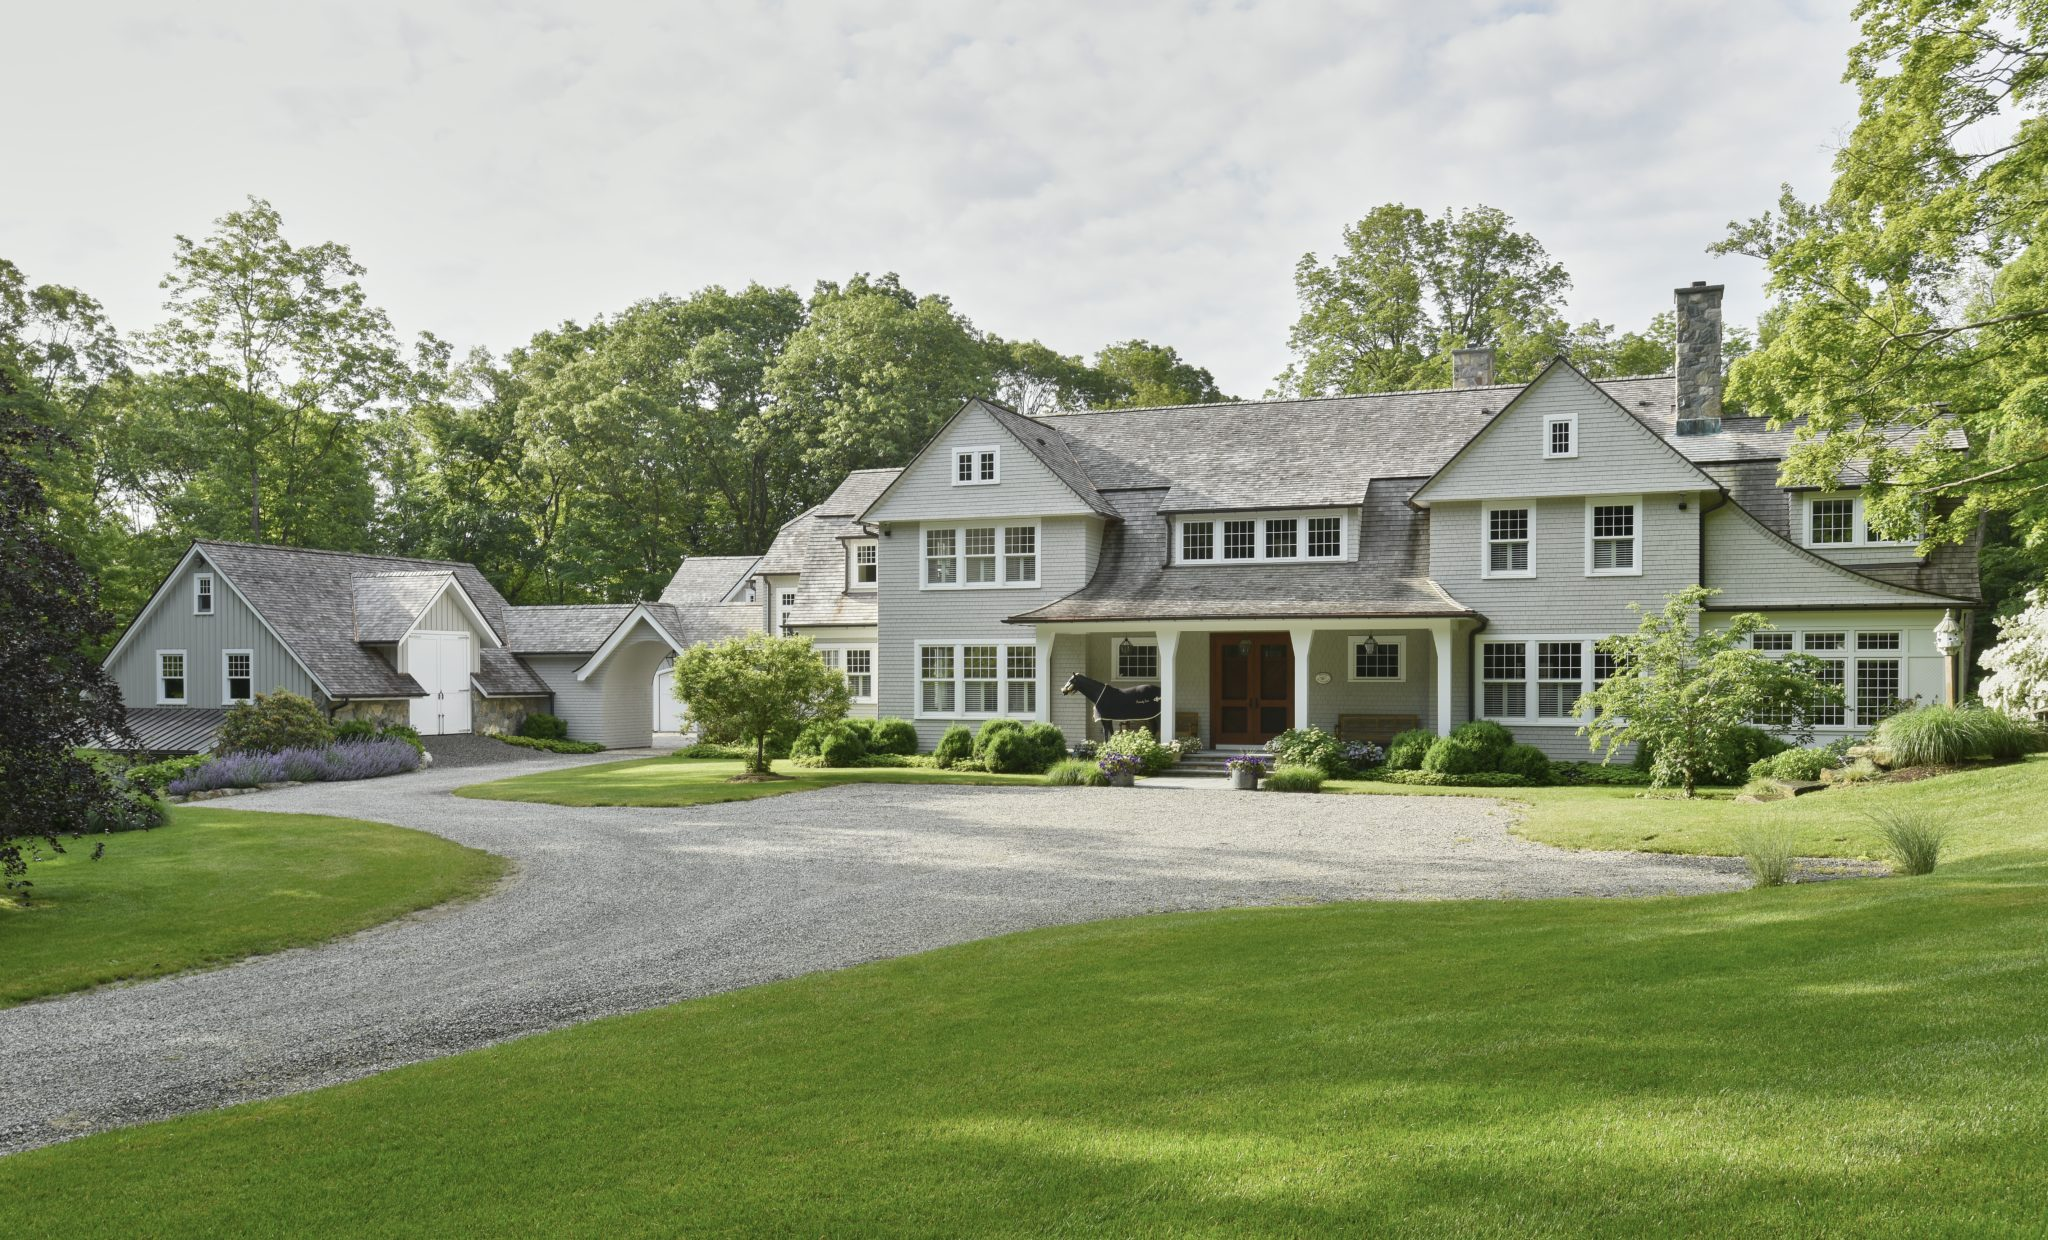 Shingle style home with carriage house and porte cochere by Huestis Tucker Architects, LLC